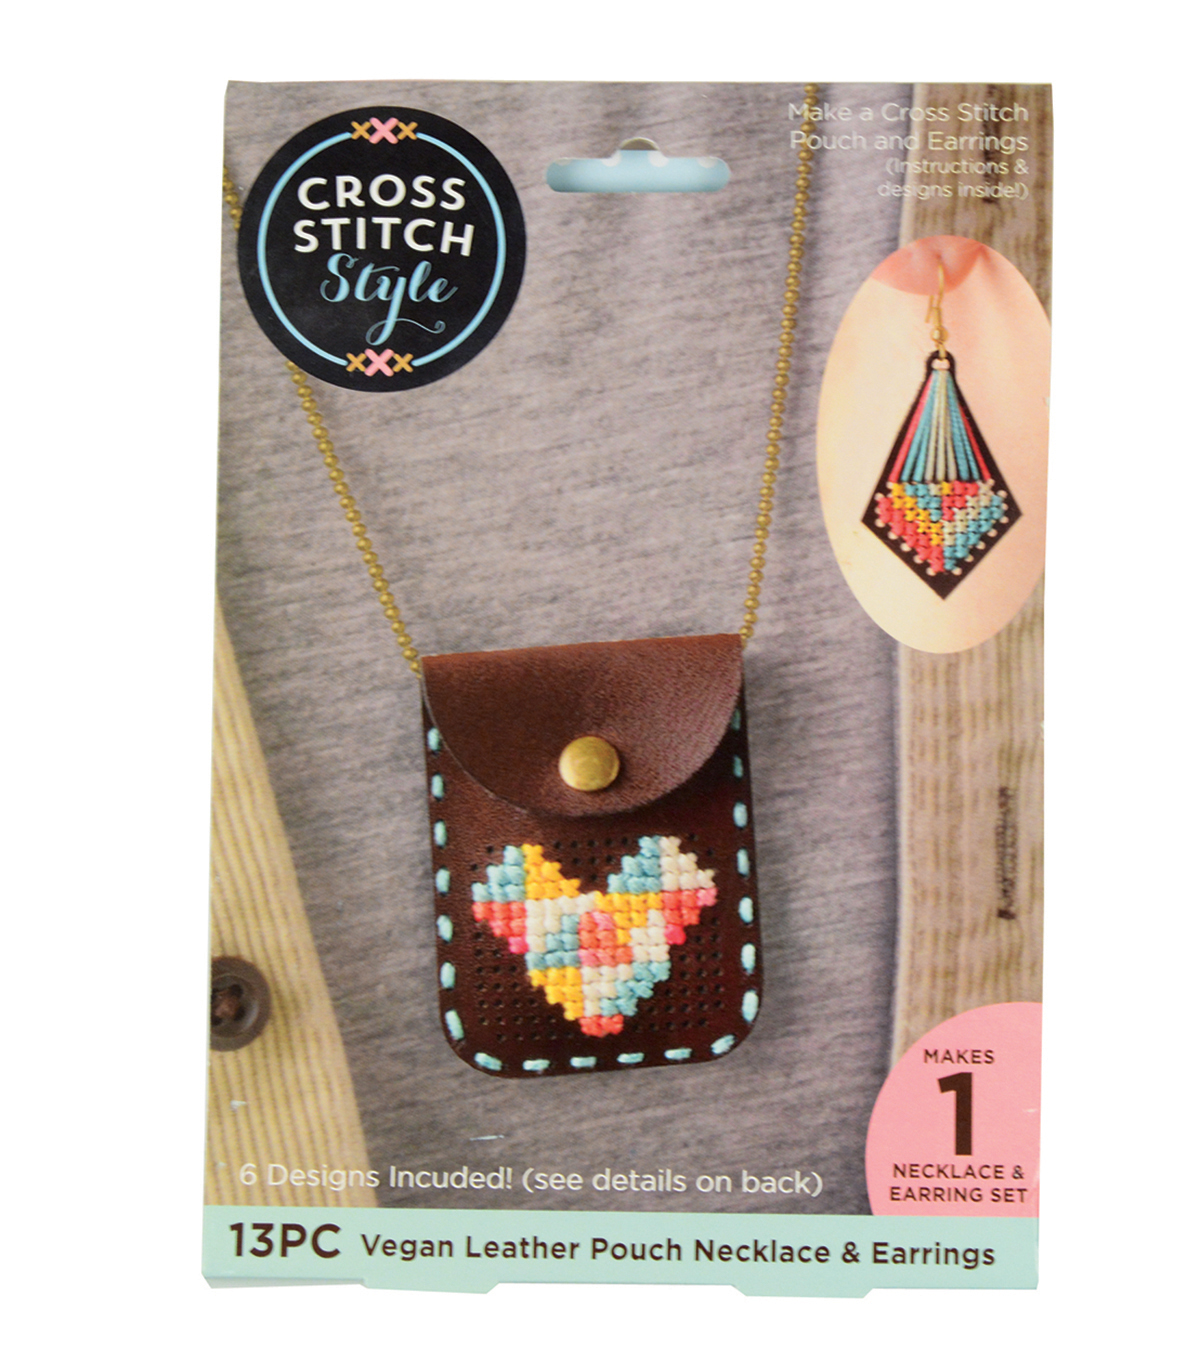 Cross Stitch Style Vegan Leather Pouch Necklace & Earrings